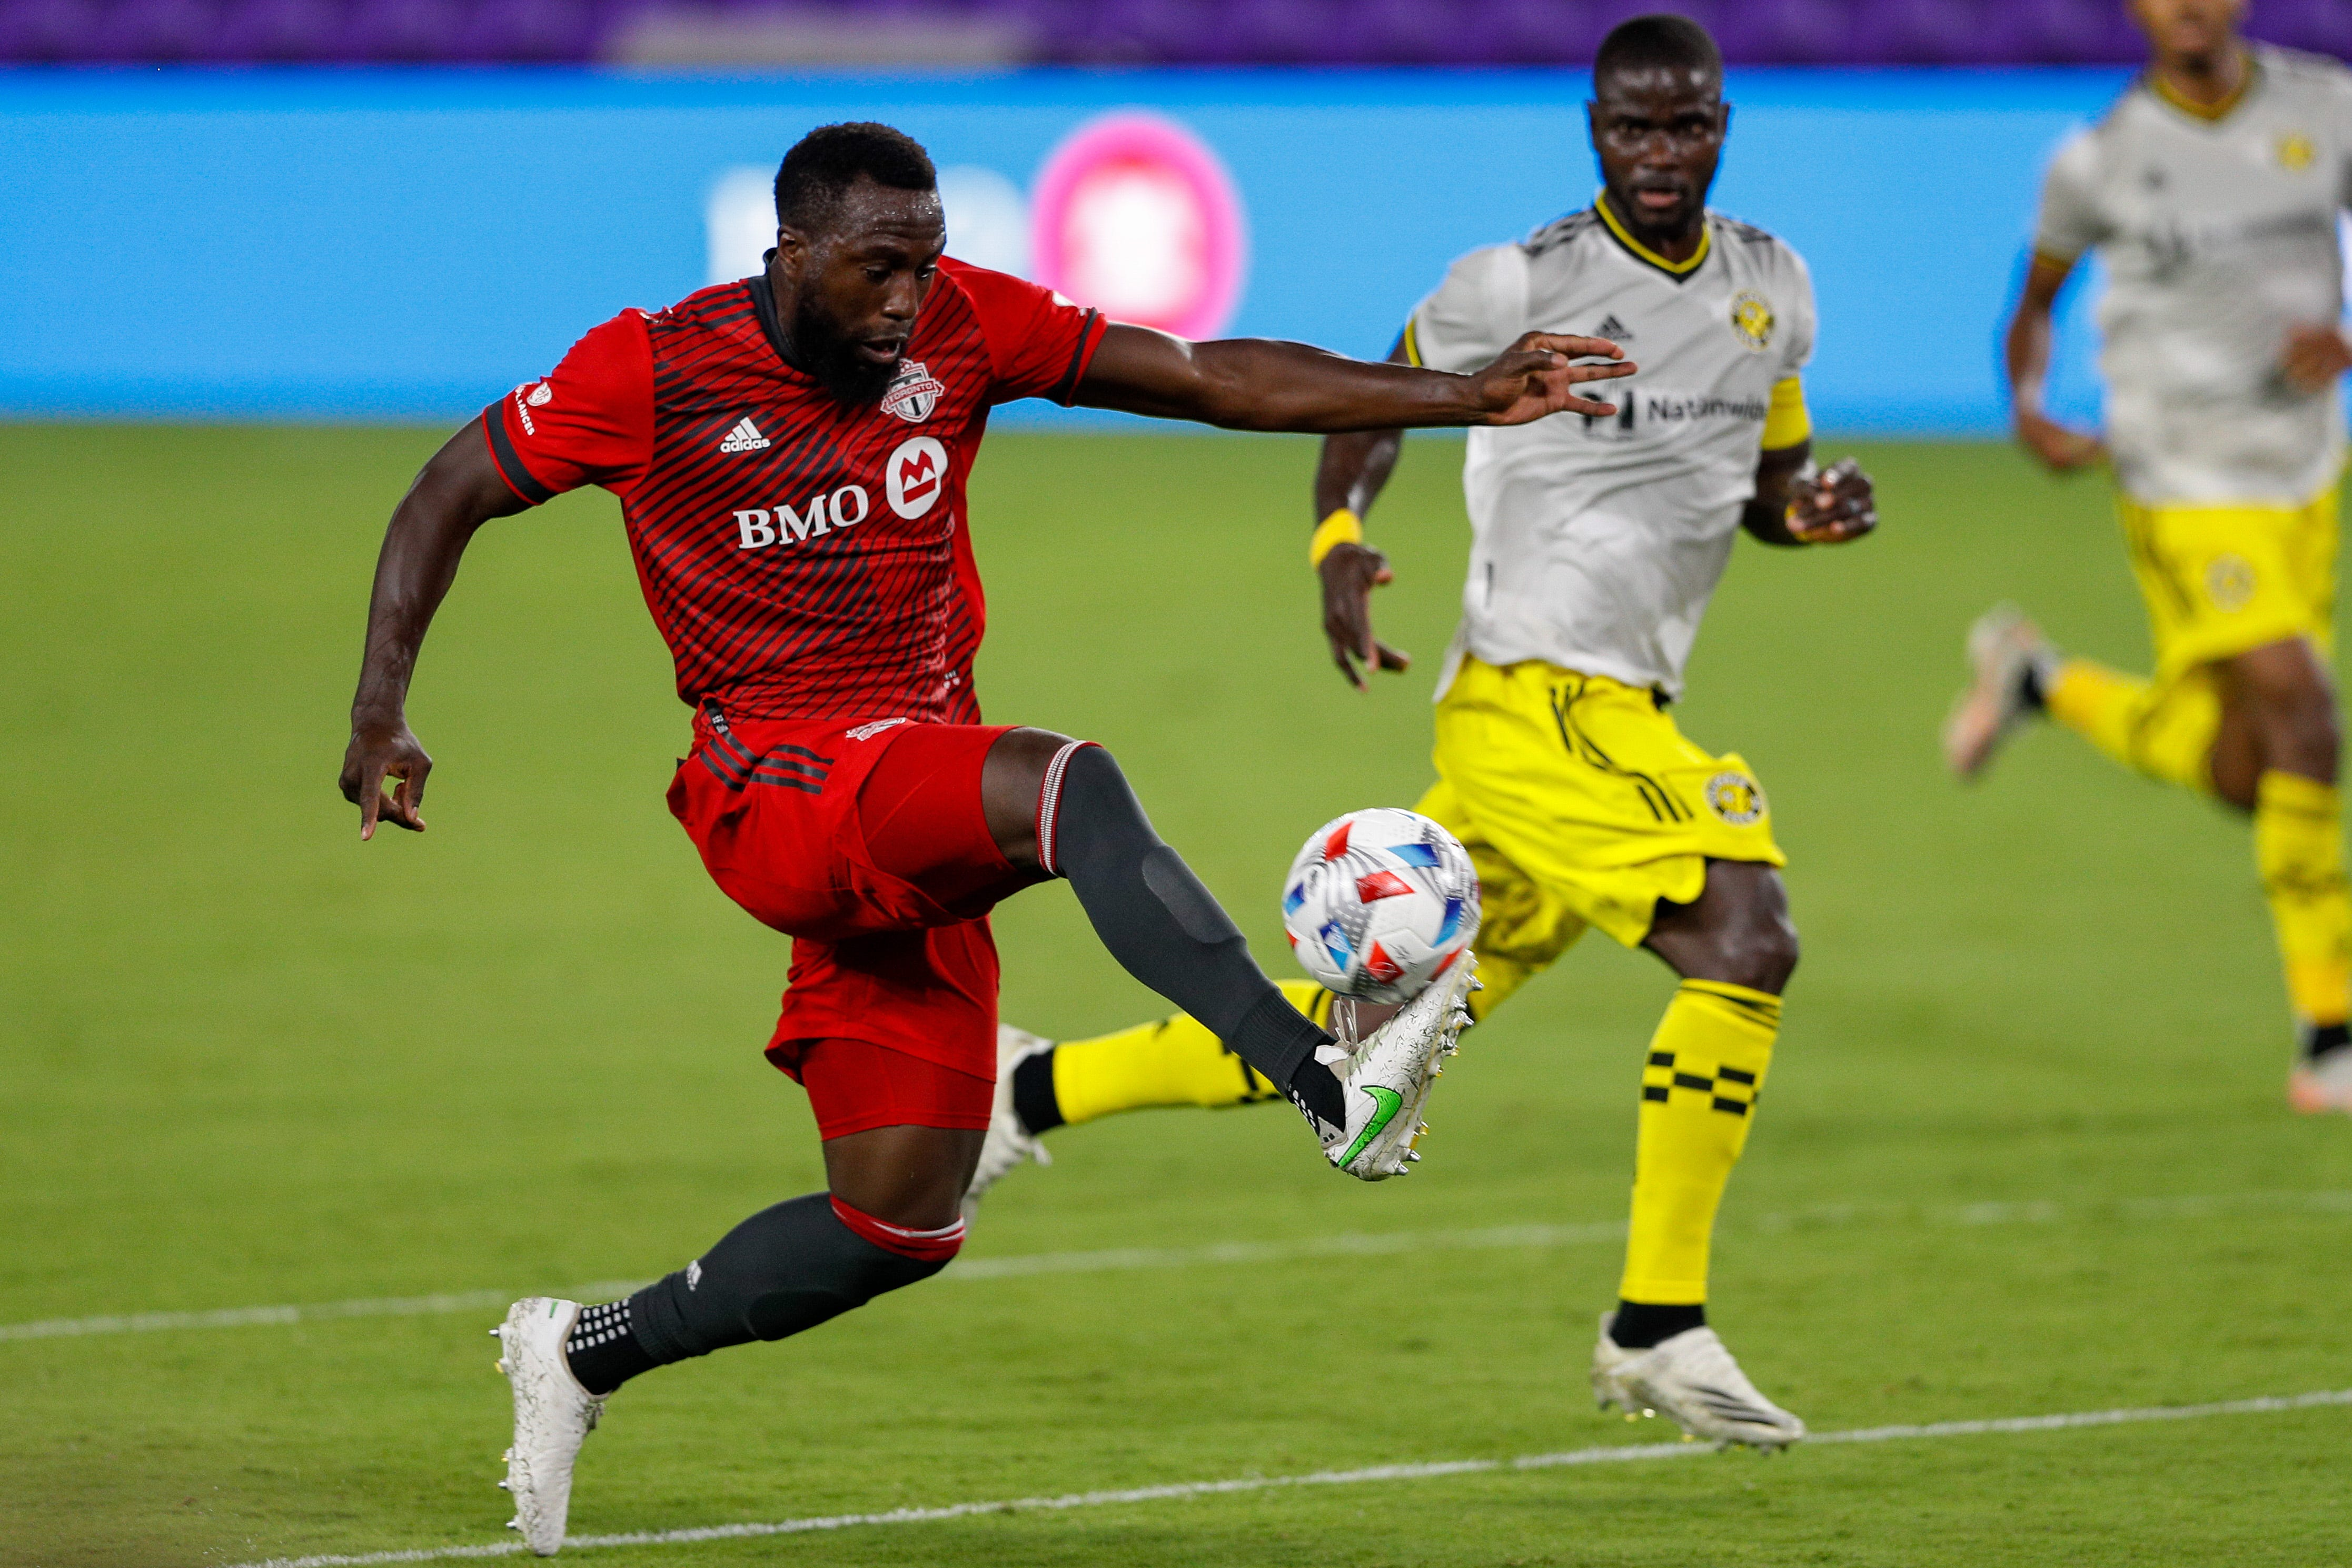 MLS notebook: Jozy Altidore could make Toronto FC return, Seattle Sounders aim to extend MLS record